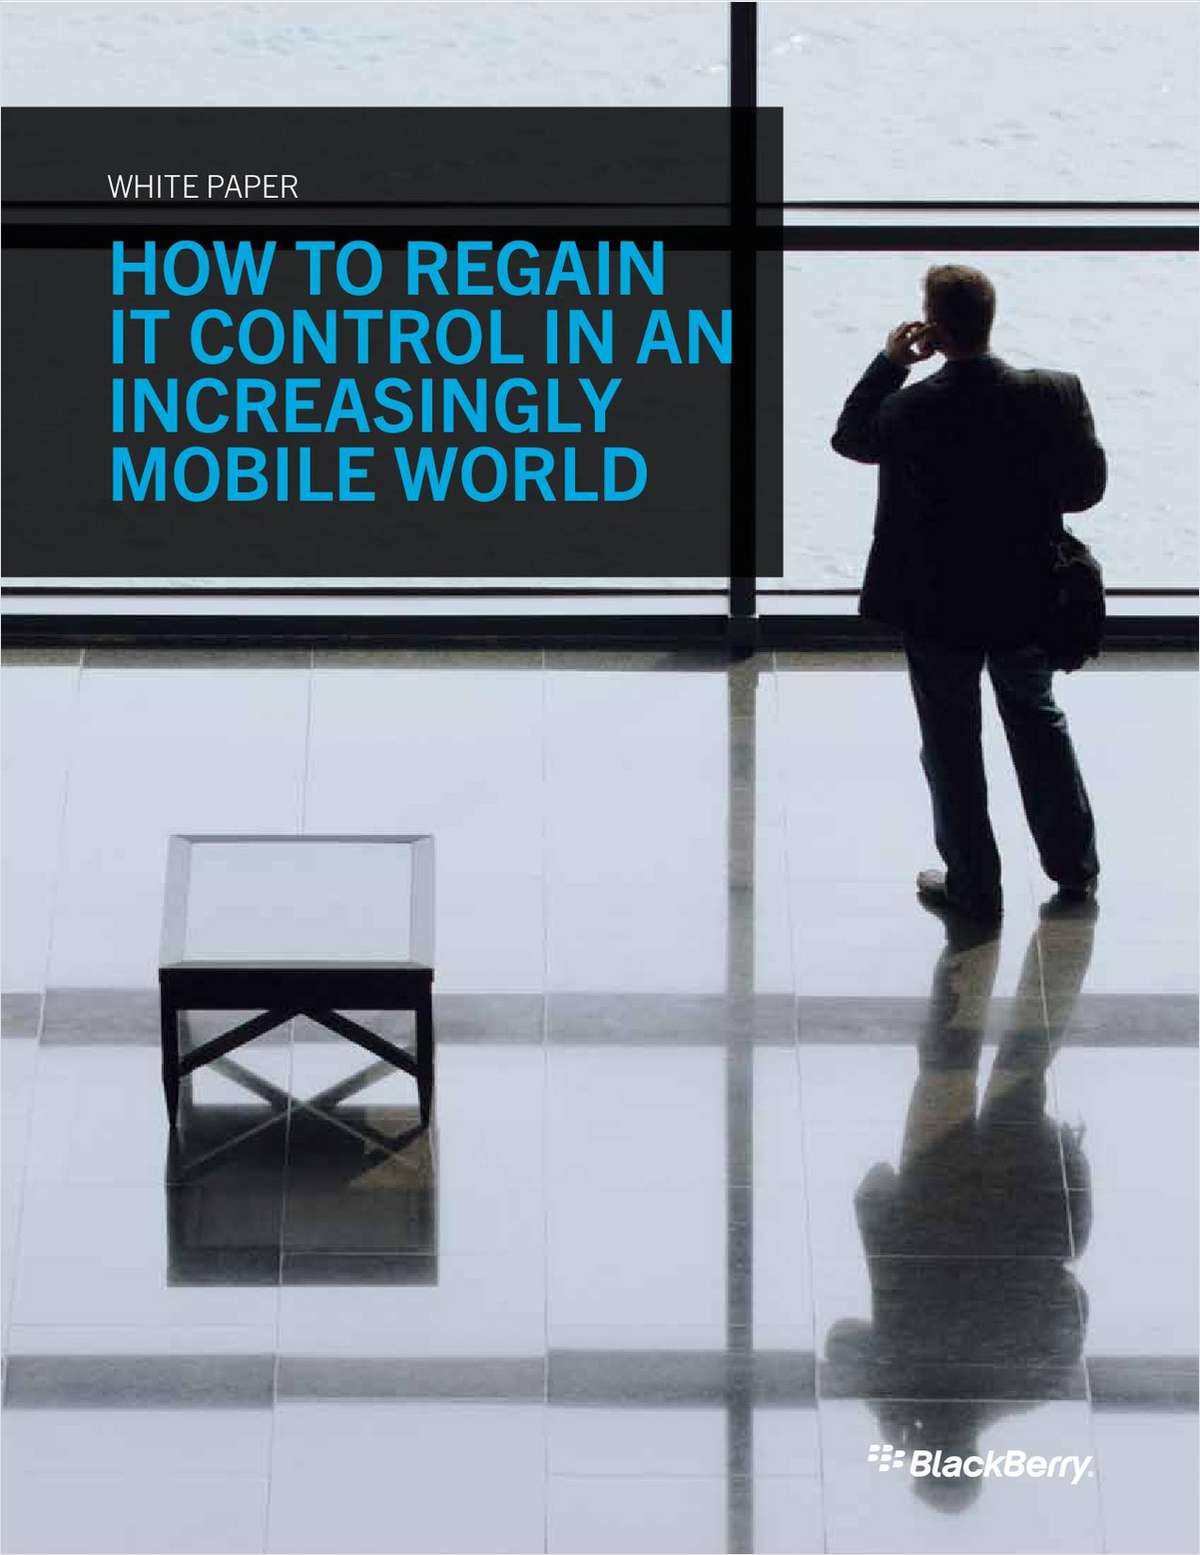 How To Regain IT Control In An Increasingly Mobile World